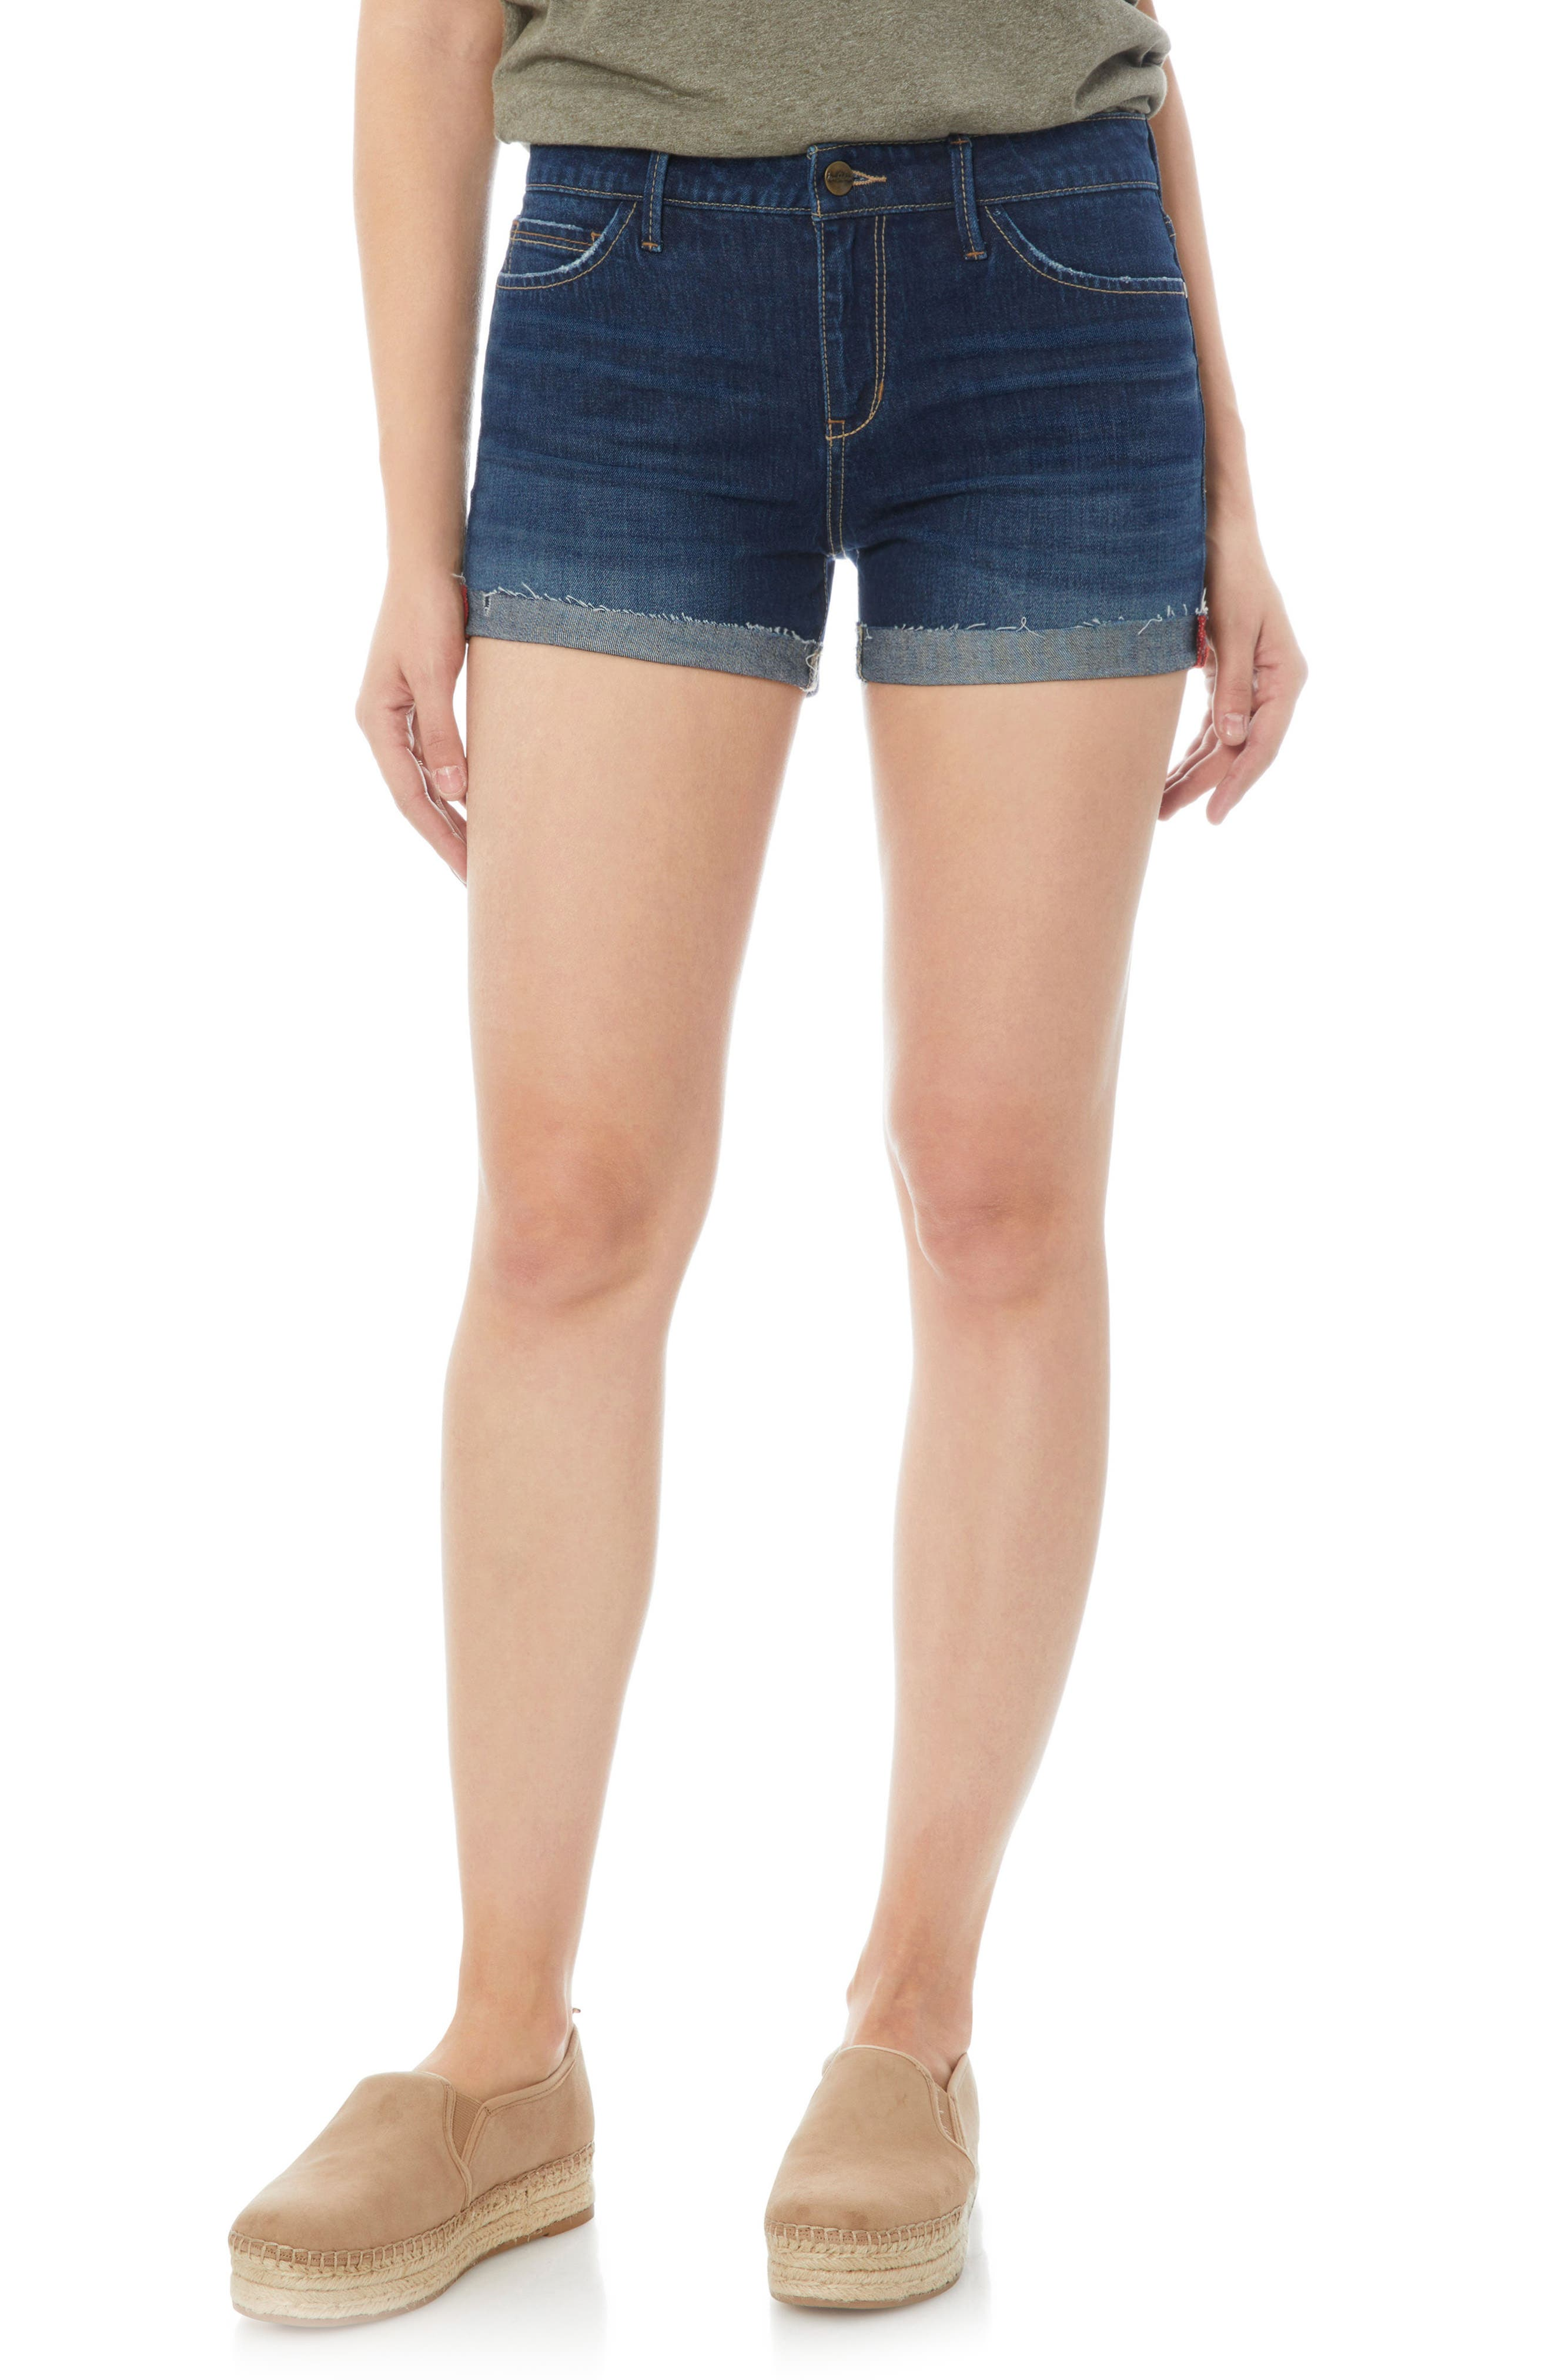 Alternate Image 1 Selected - Sam Edelman The Drew Jean Shorts (Isy)